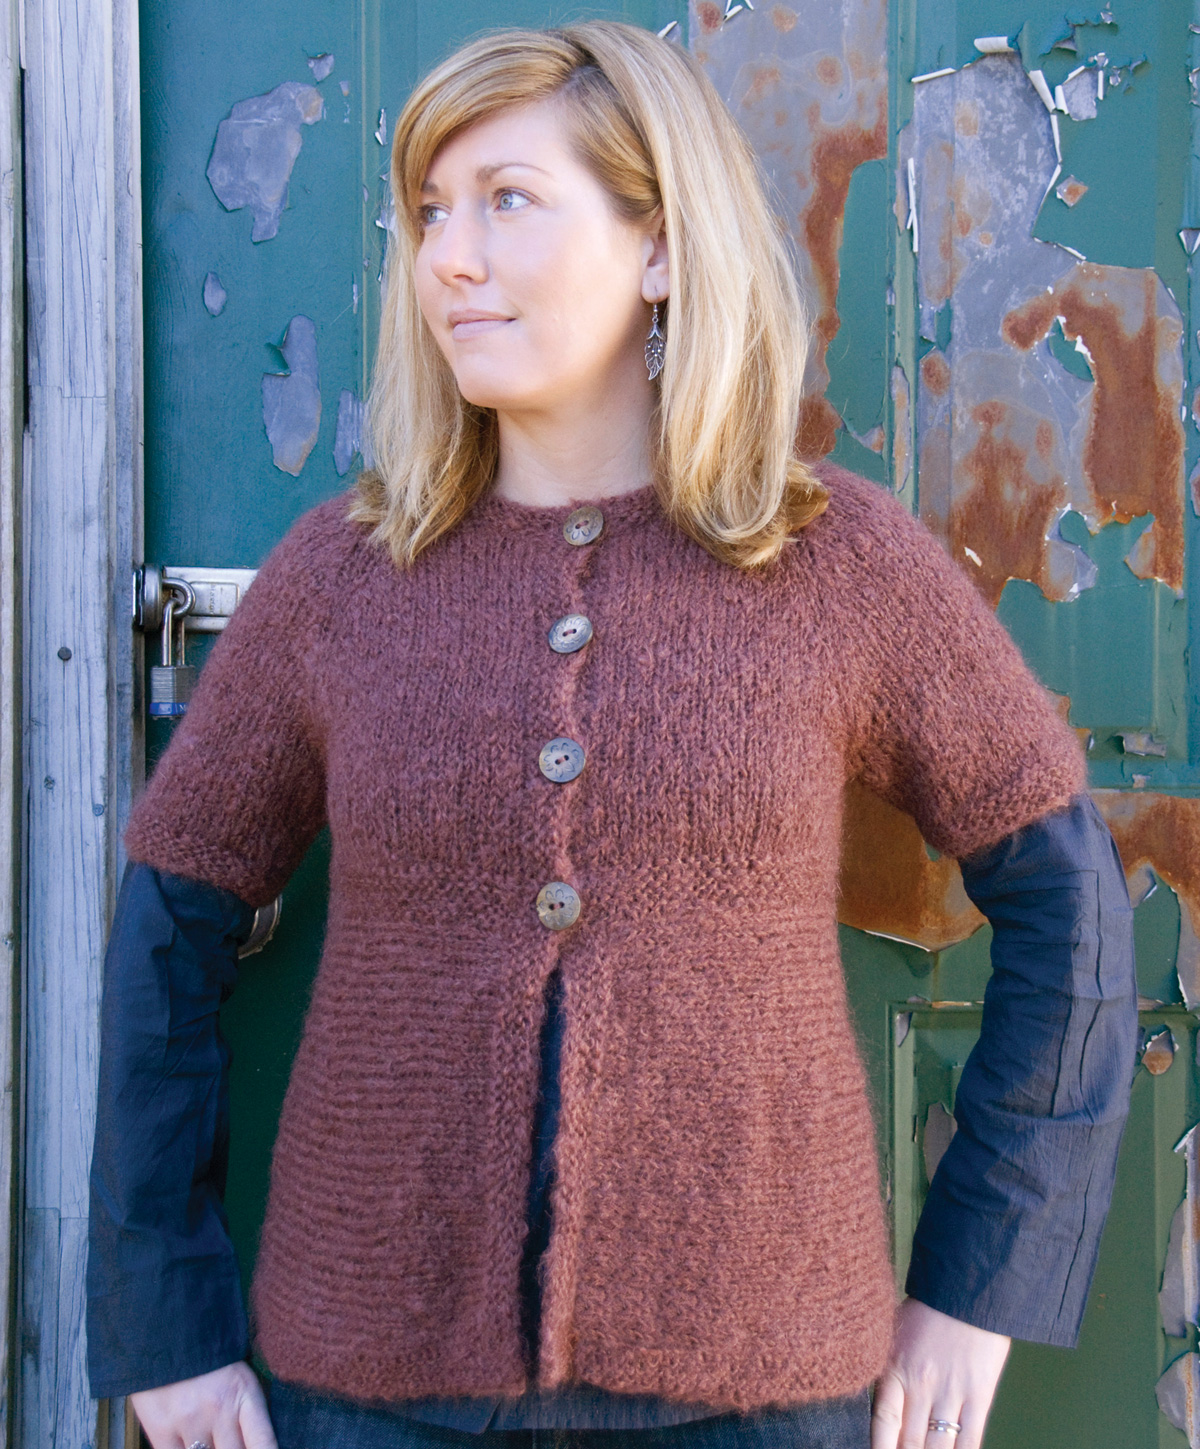 Boxcar - Free Cardigan Knitting Pattern ⋆ Knitting Bee